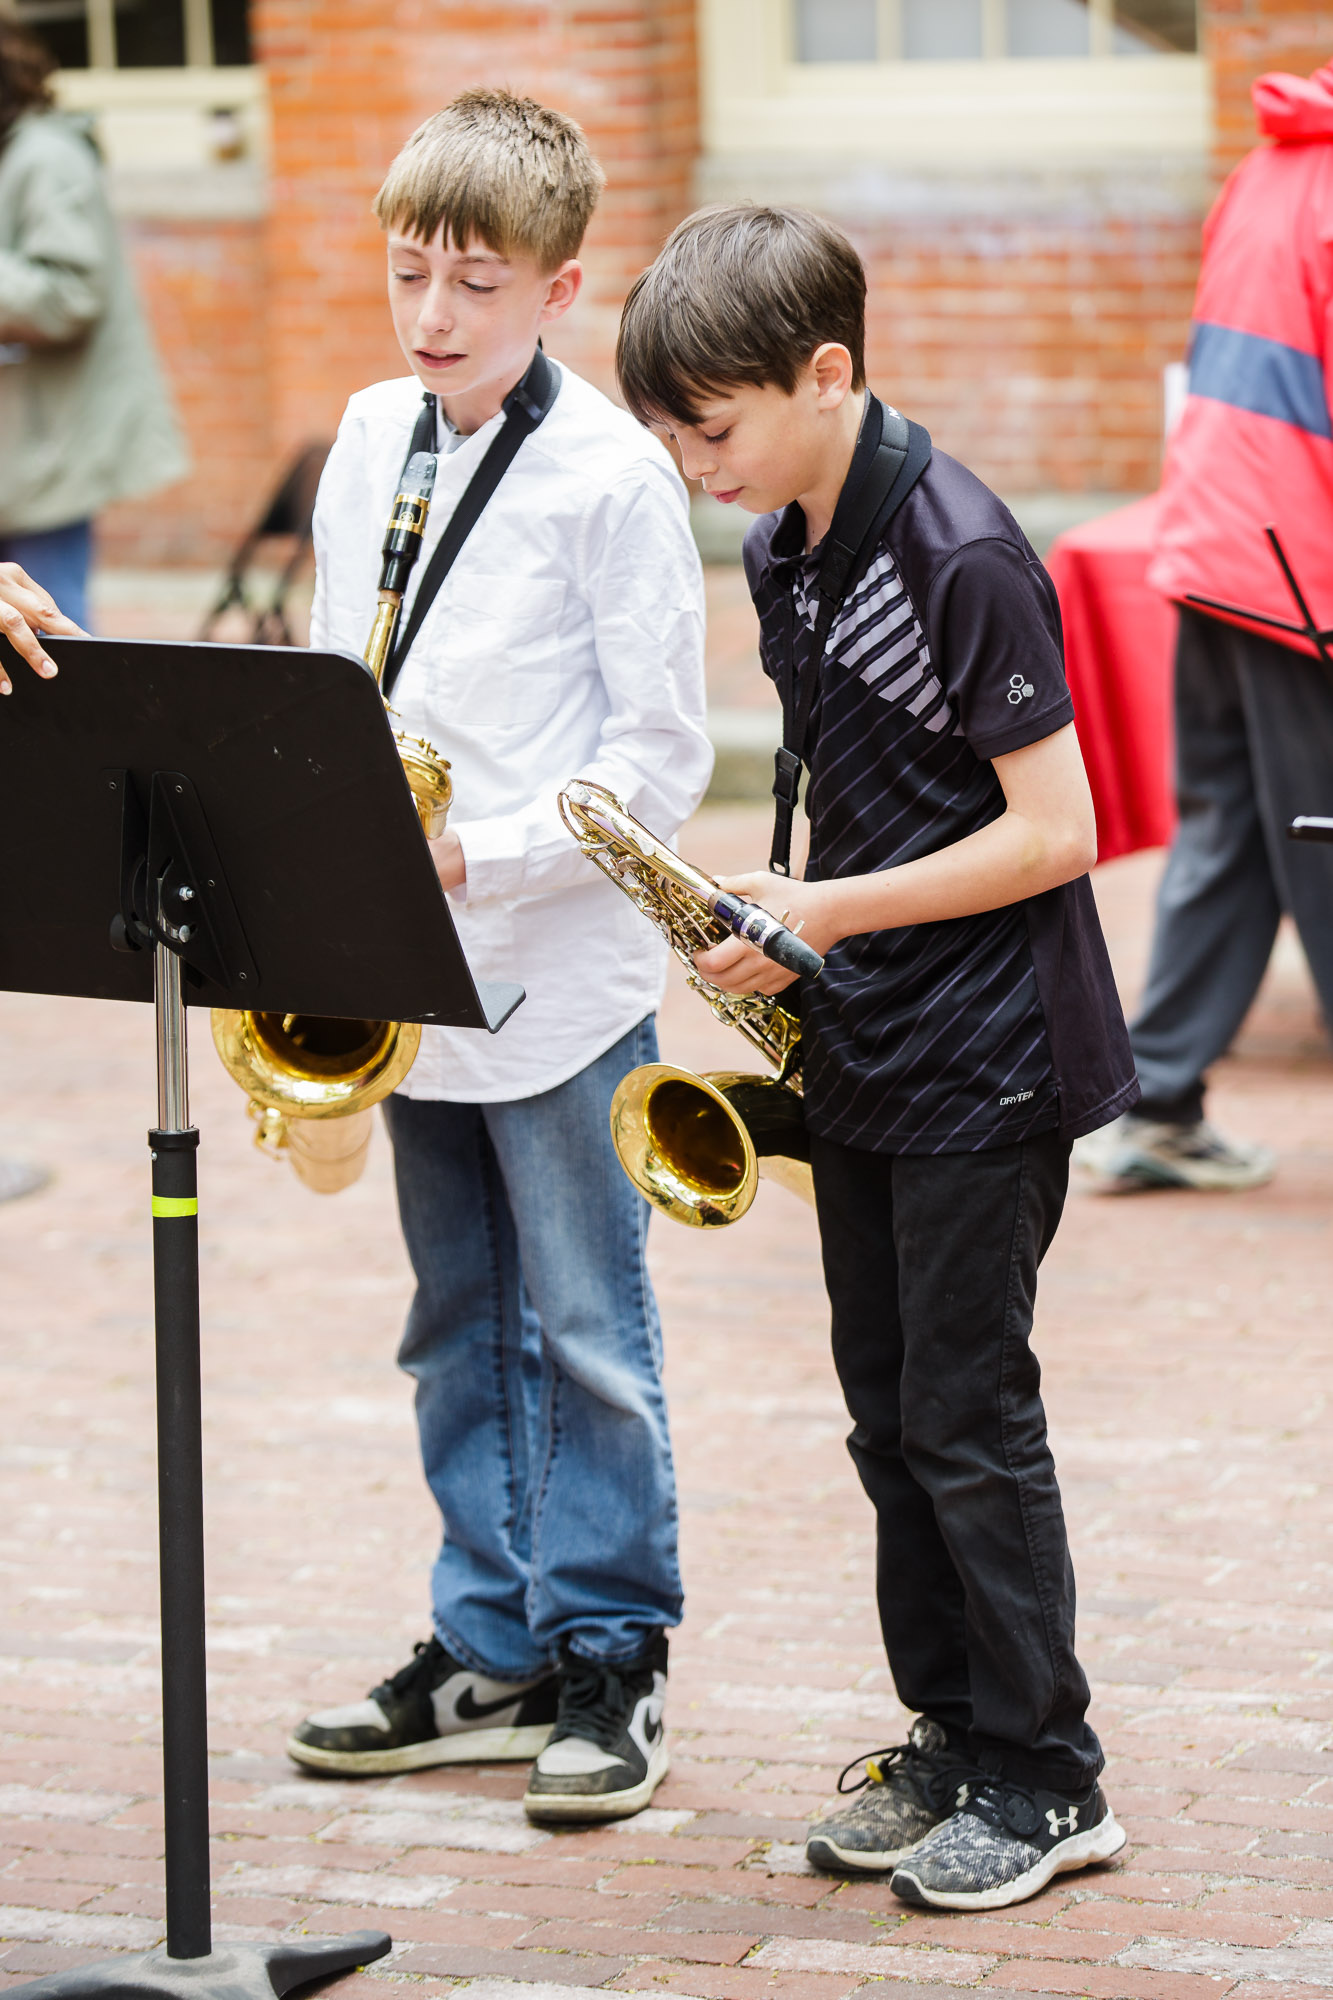 Jazz Trio performs in front of Old Town Hall